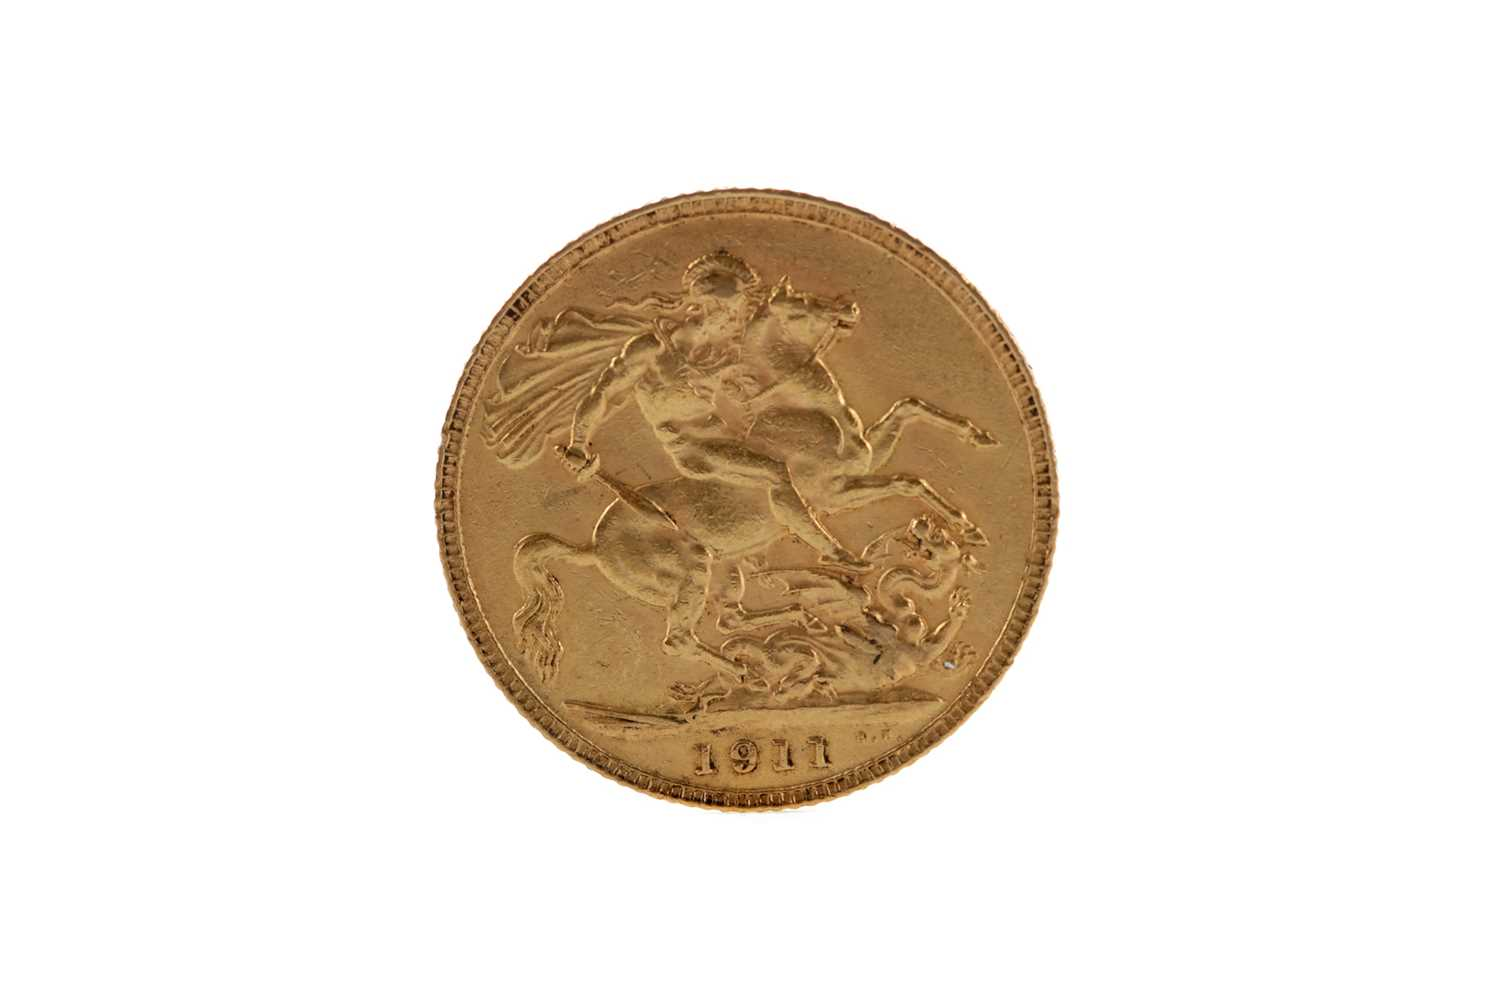 Lot 39 - A GOLD SOVEREIGN DATED 1911